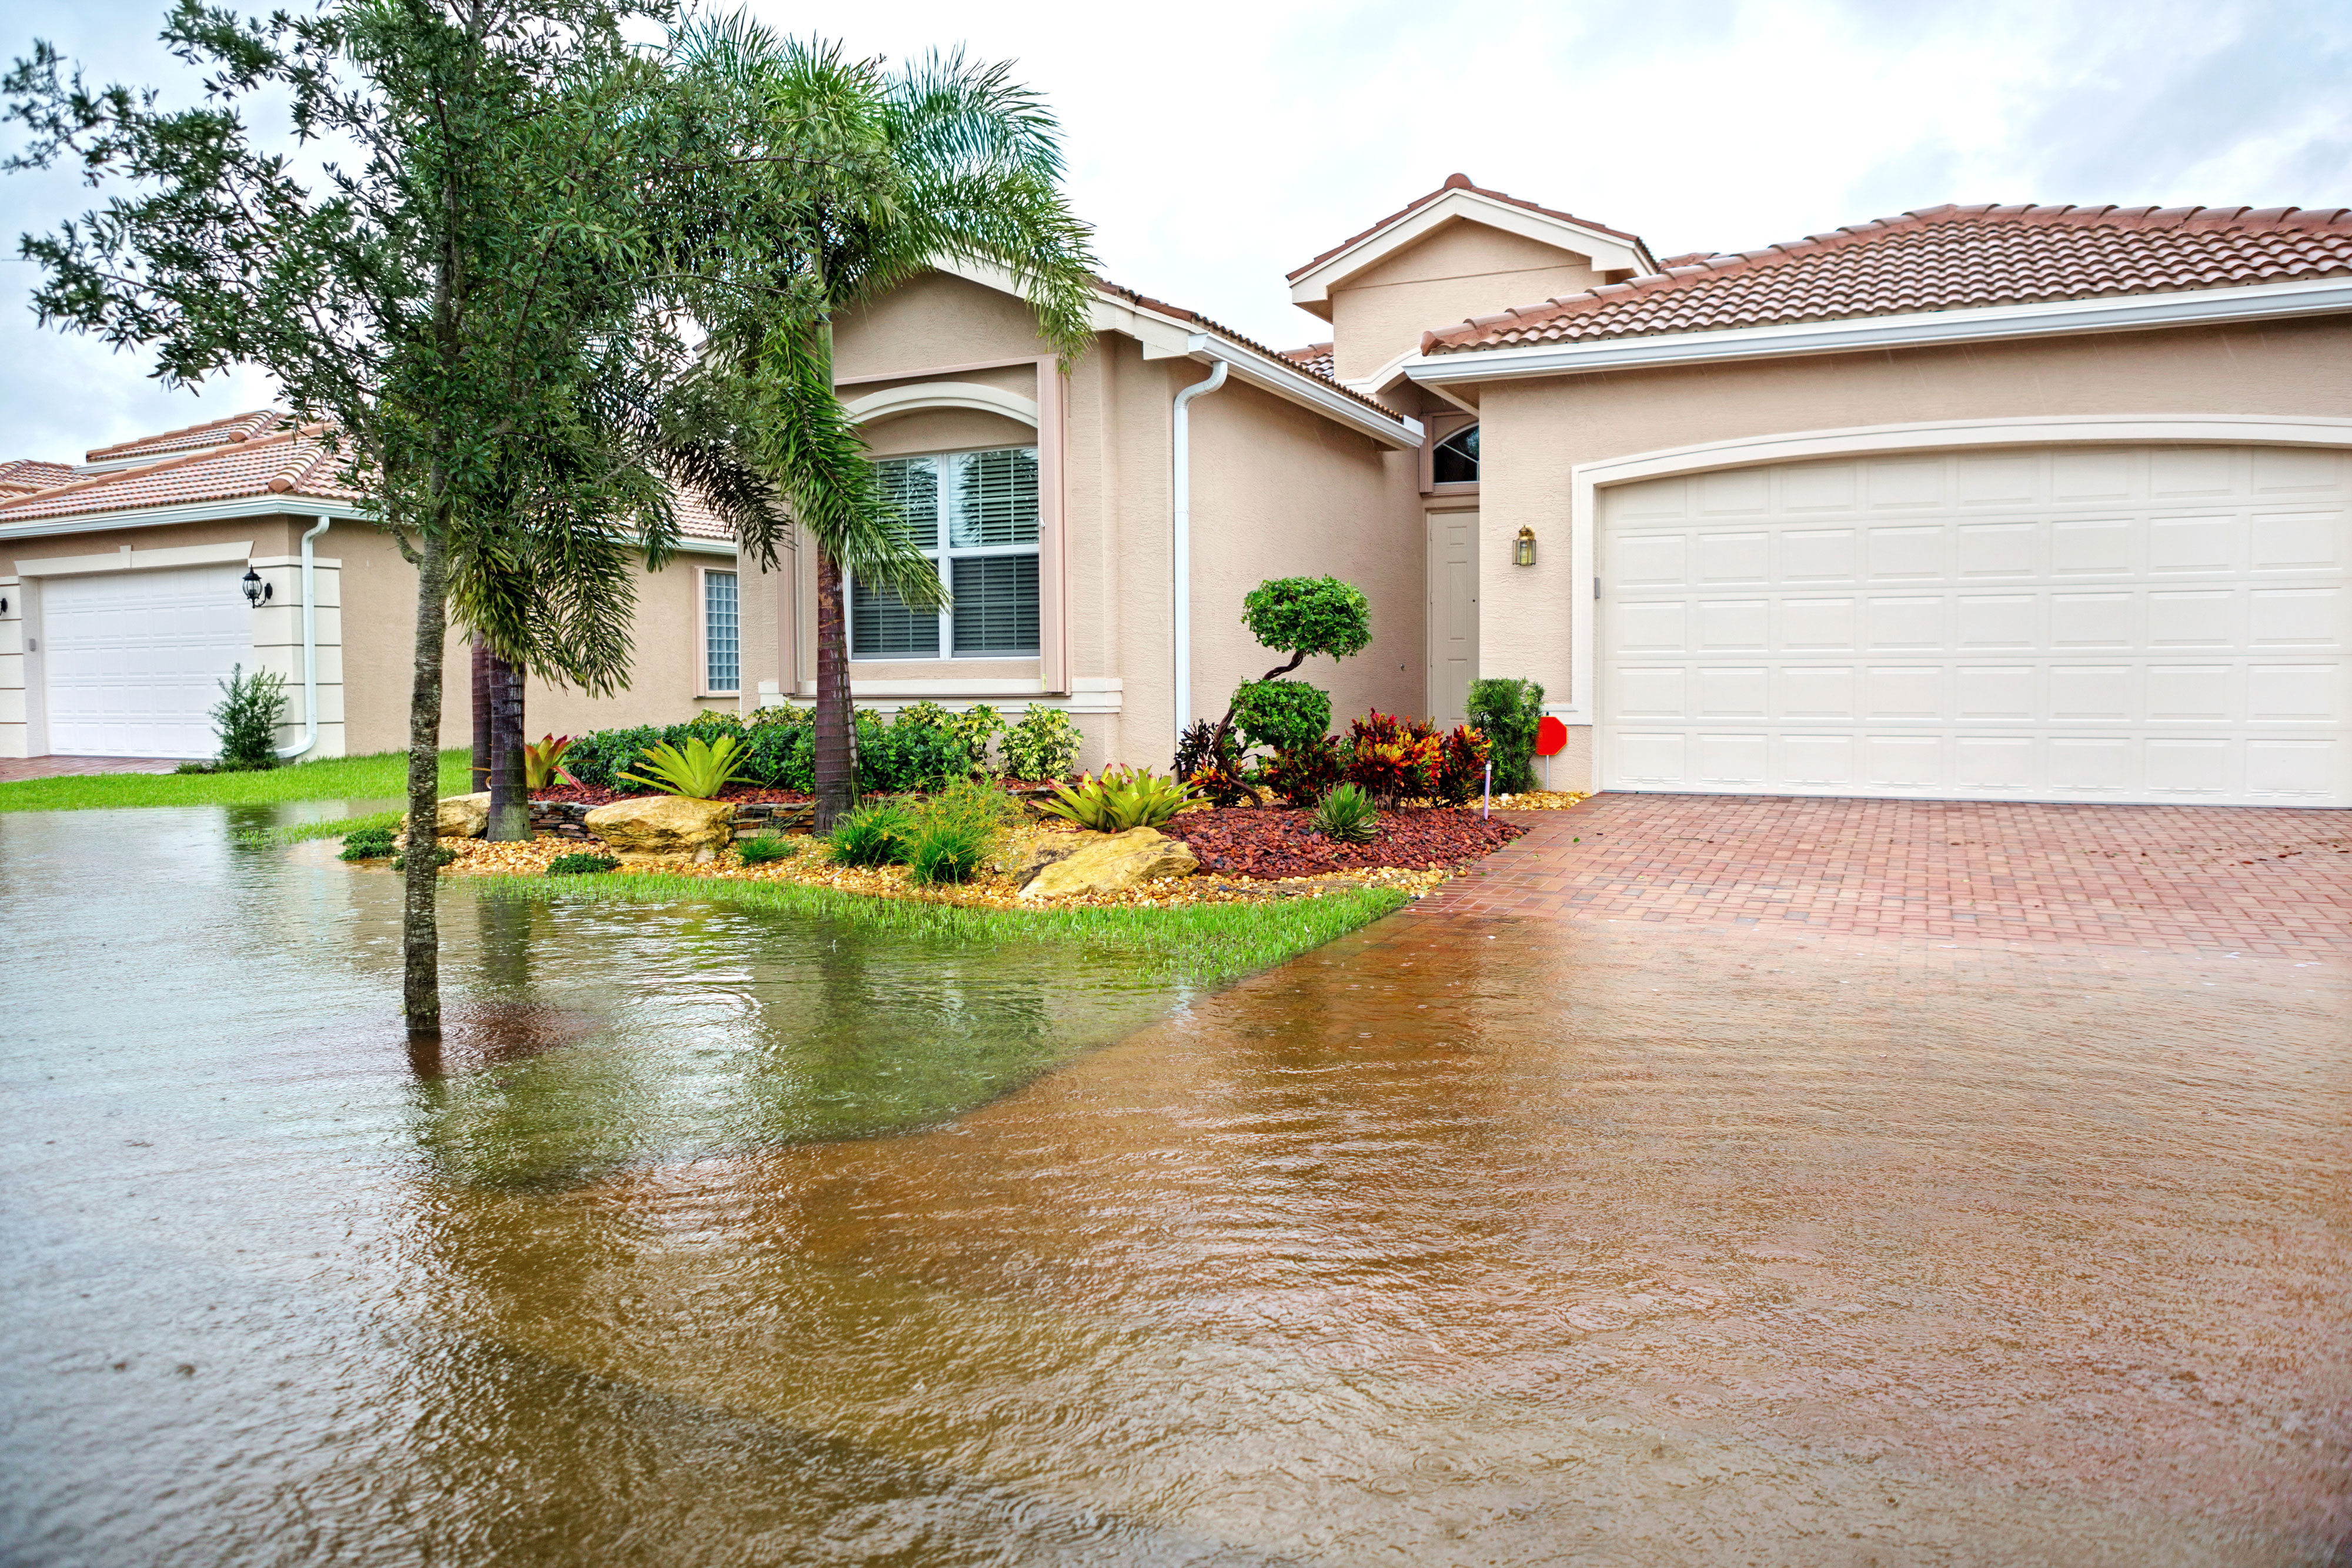 Flood water rising to house